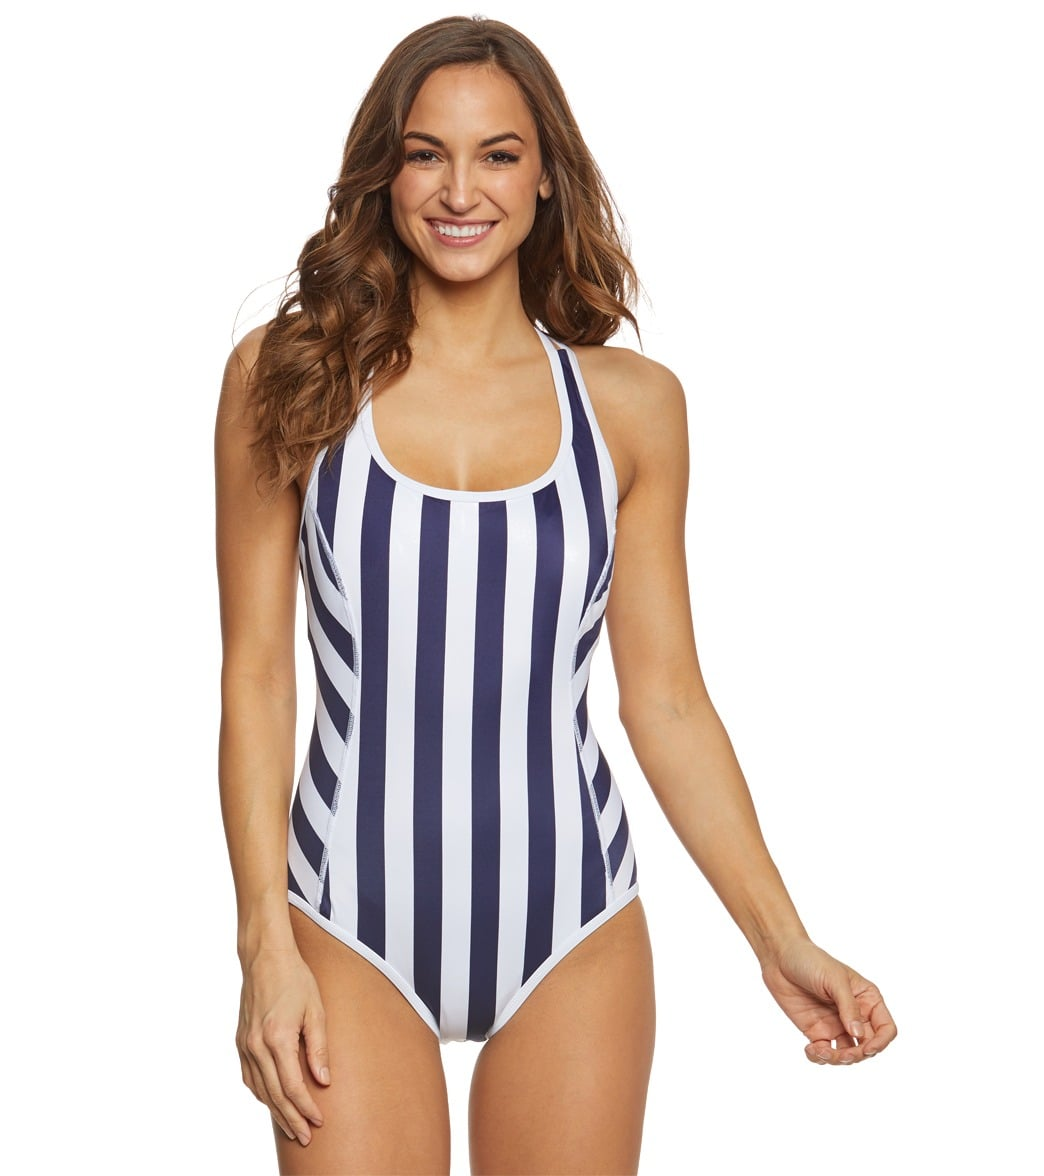 395714725eb31 Tommy Bahama Stripes Tank One Piece Swimsuit at SwimOutlet.com - Free  Shipping